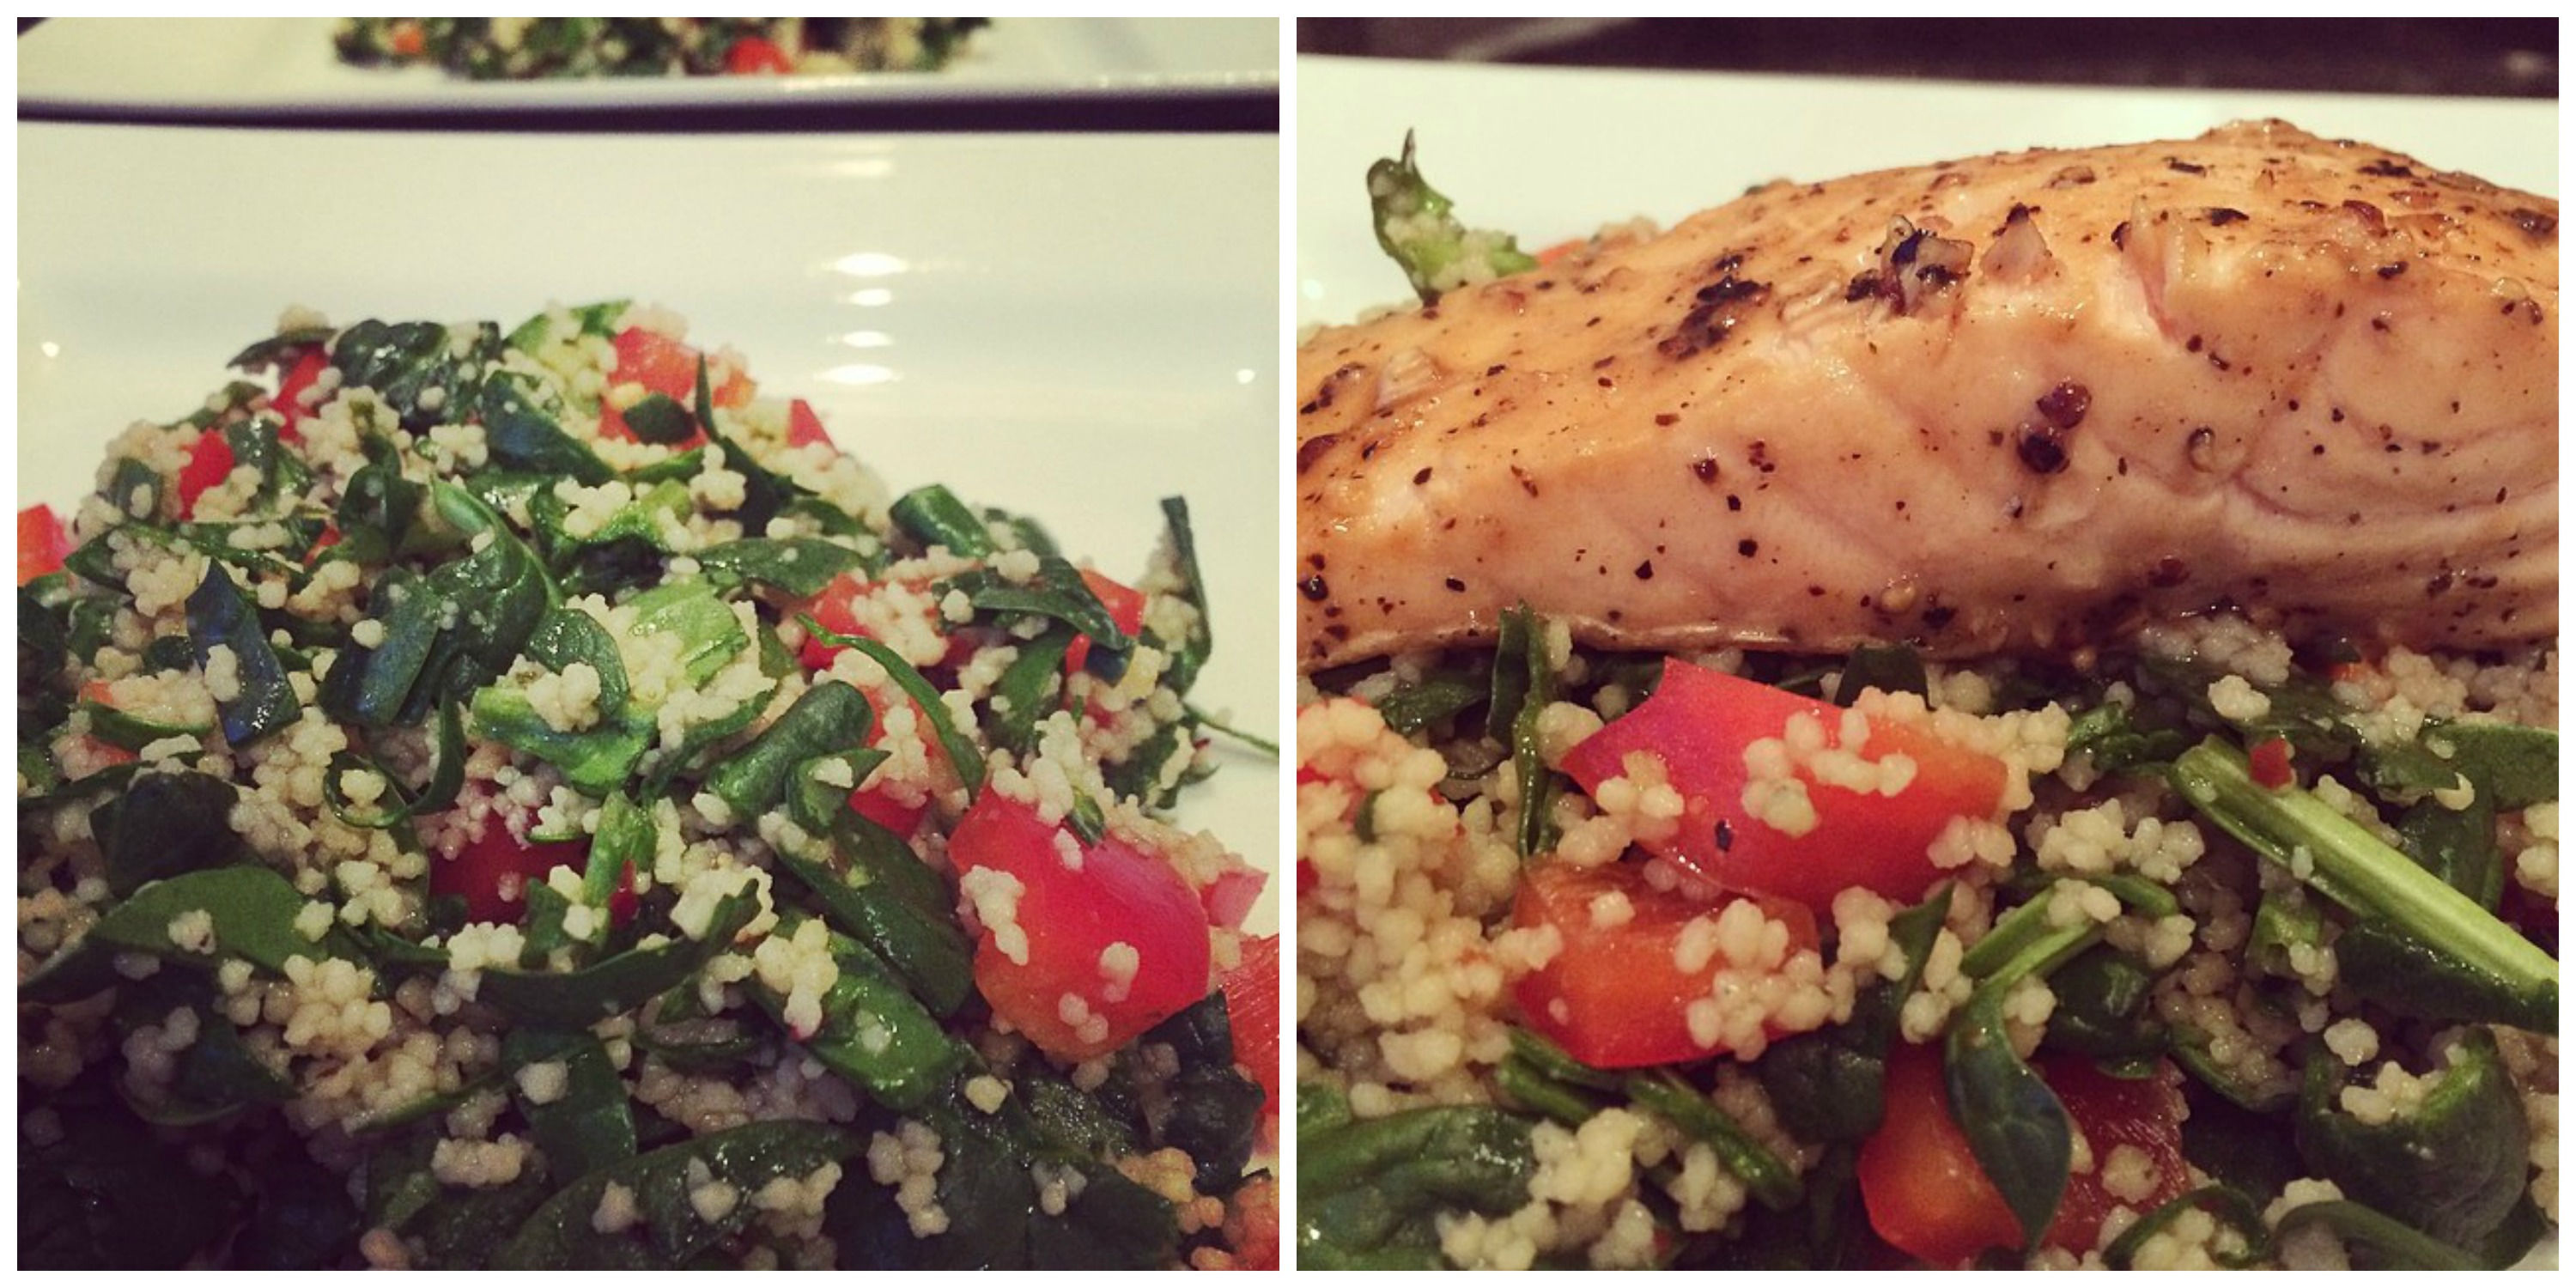 Warm spinach & cous cous salad w/ lemon, honey & chilli dressing and lemon pepper salmon fillet